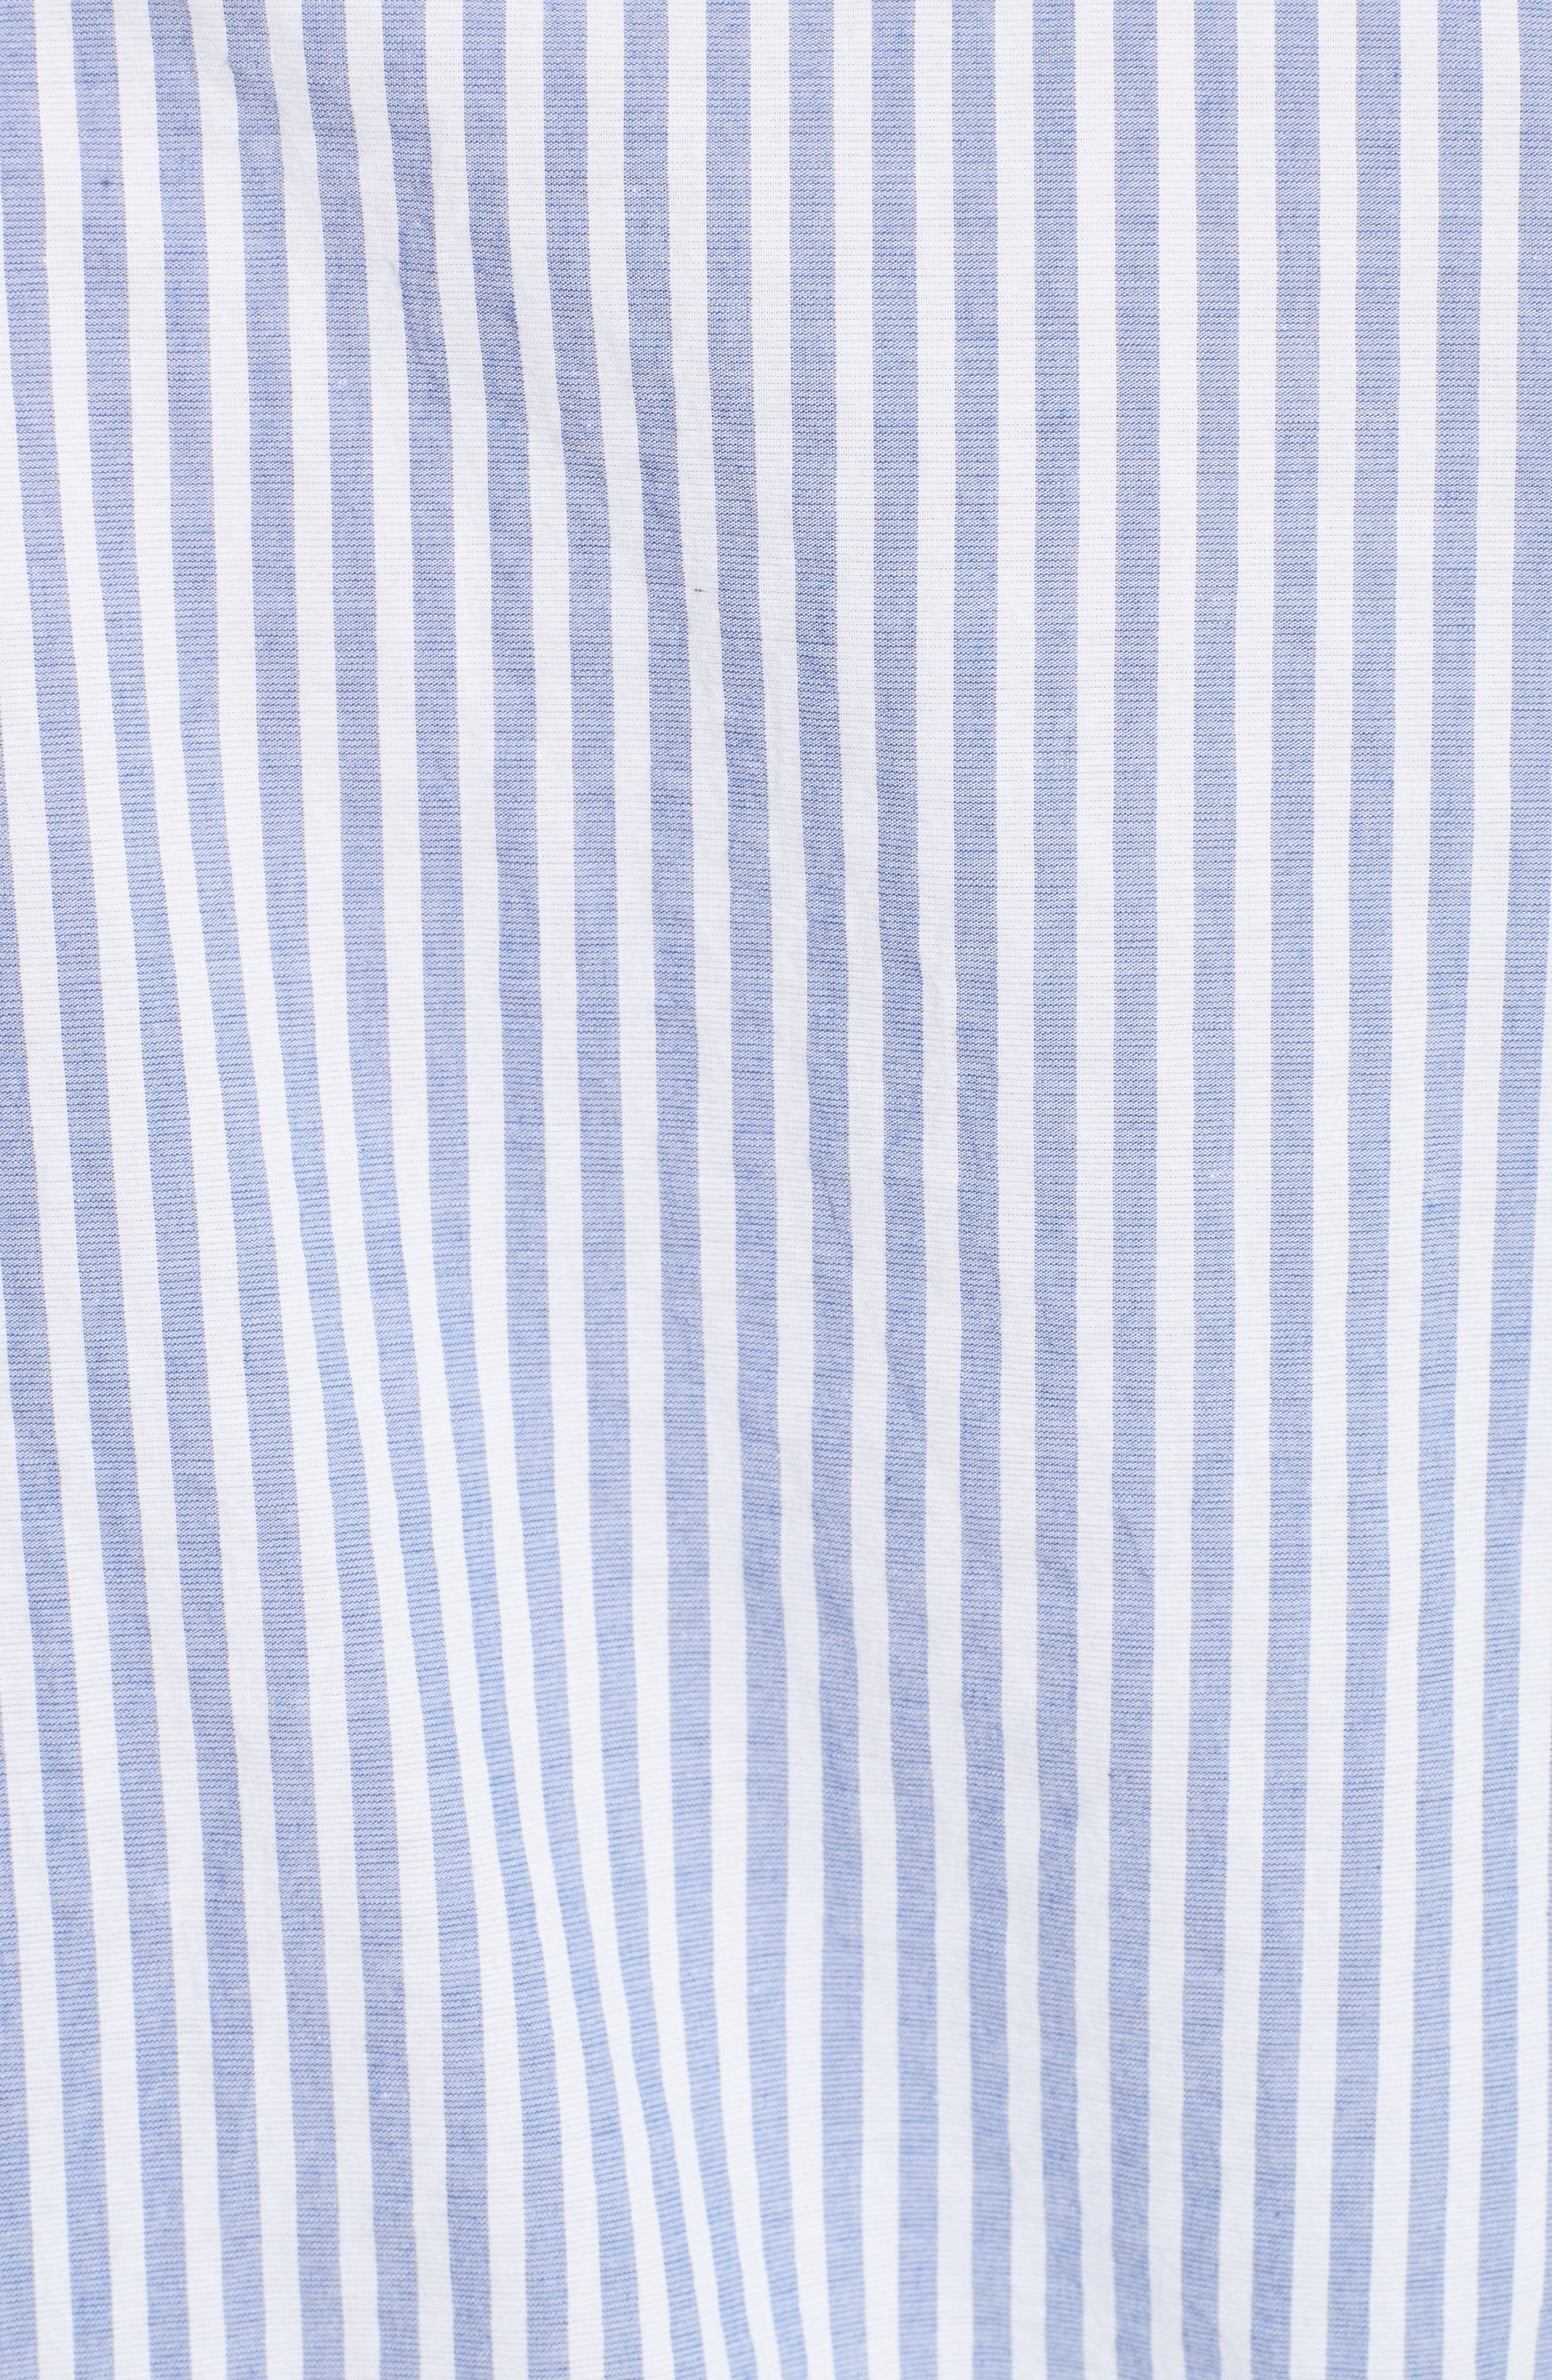 Benfleet Stripe Cotton Top,                             Alternate thumbnail 3, color,                             Pale Blue/ White